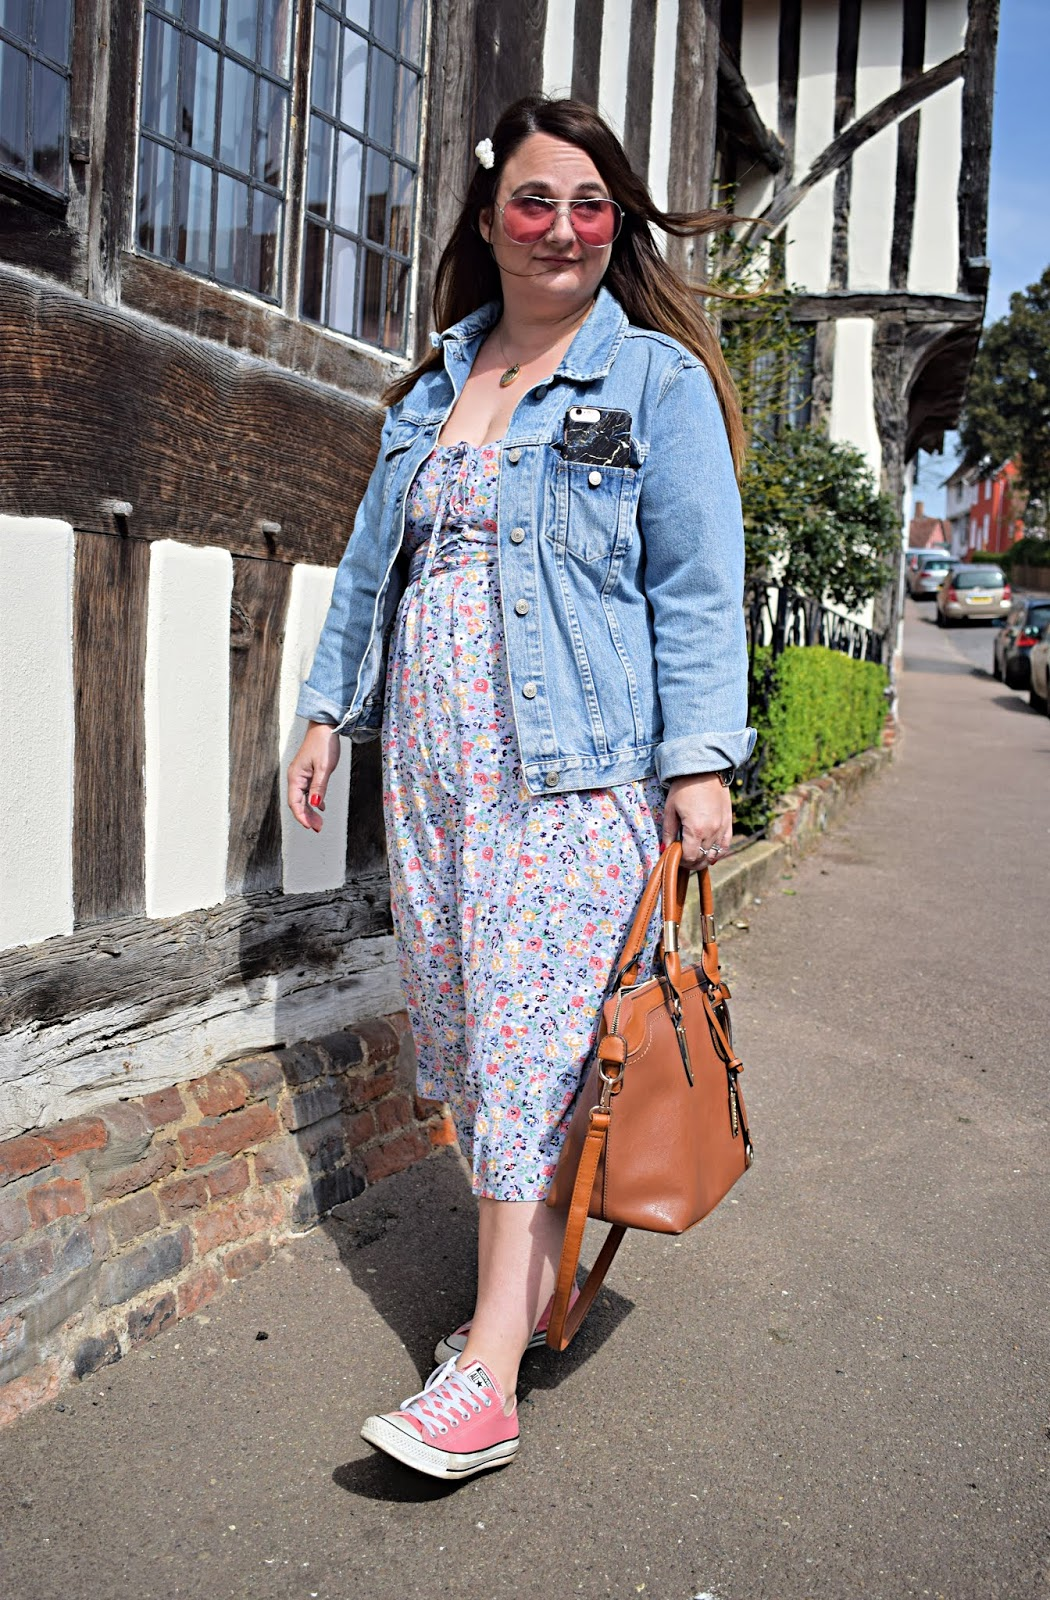 How to wear florals when you're not a girly girl